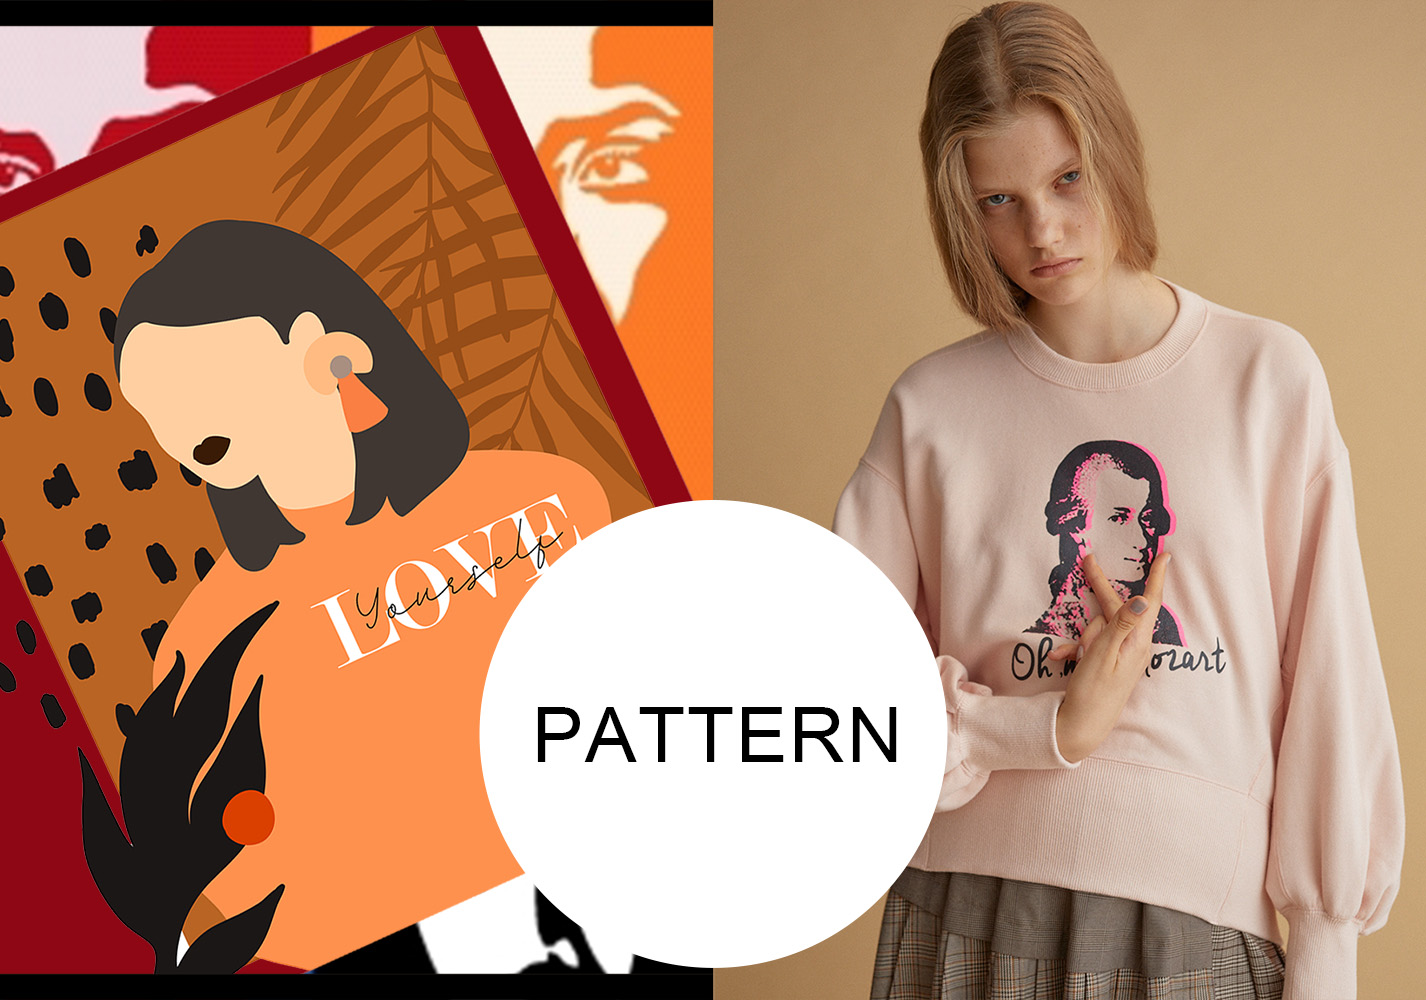 Sketchy portraits -- 20/21 A/W Pattern Trend for Women's Wear